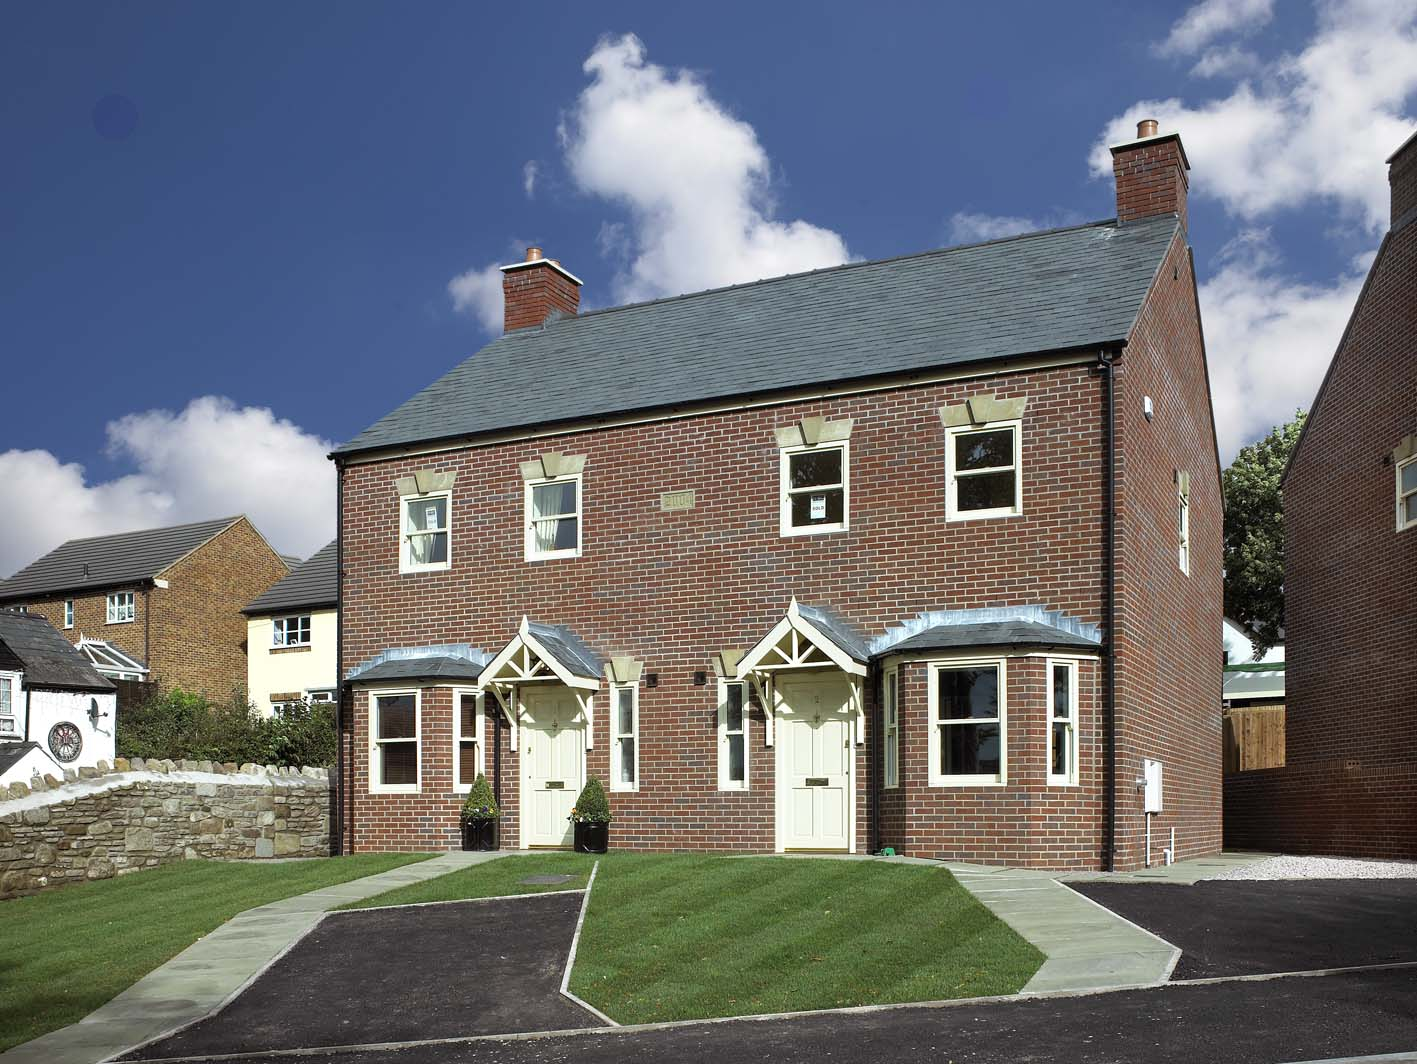 New detached and semi-detached houses on Greenfield site in Coleford, Gloucestershire.